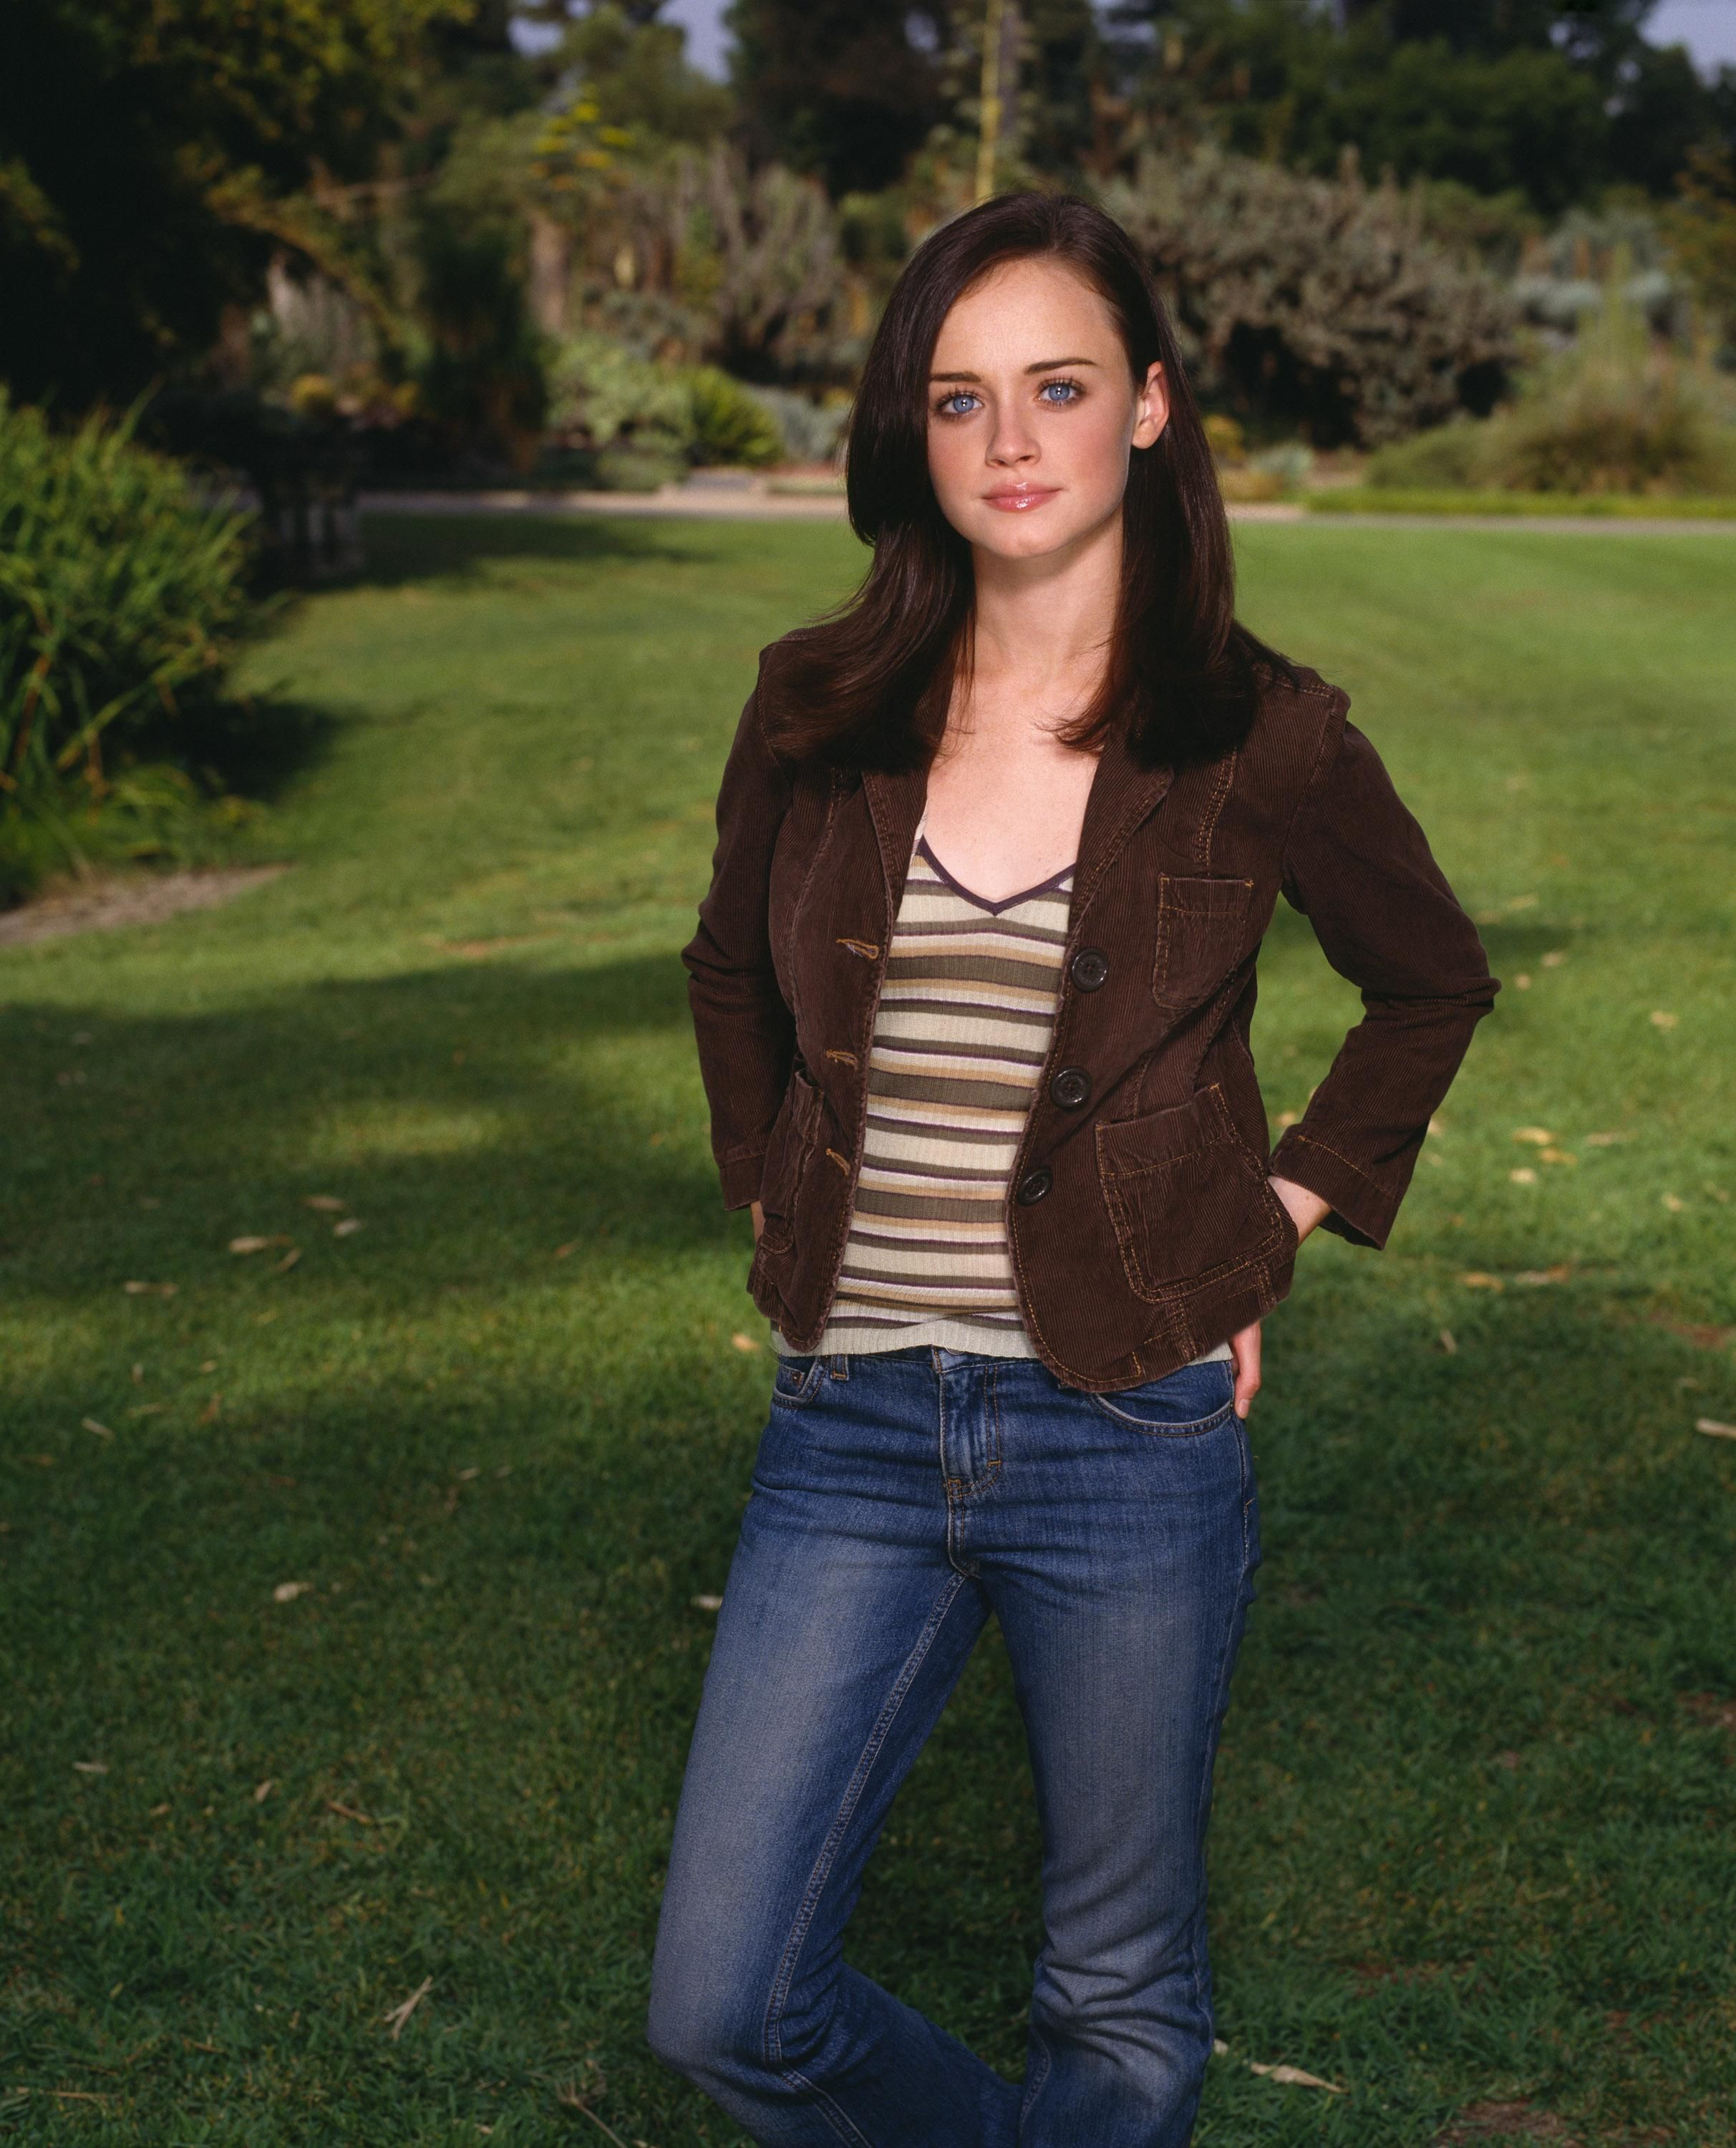 Pin by Iscah McKrae on Rory Gilmore | Gilmore girls fashion, Gilmore